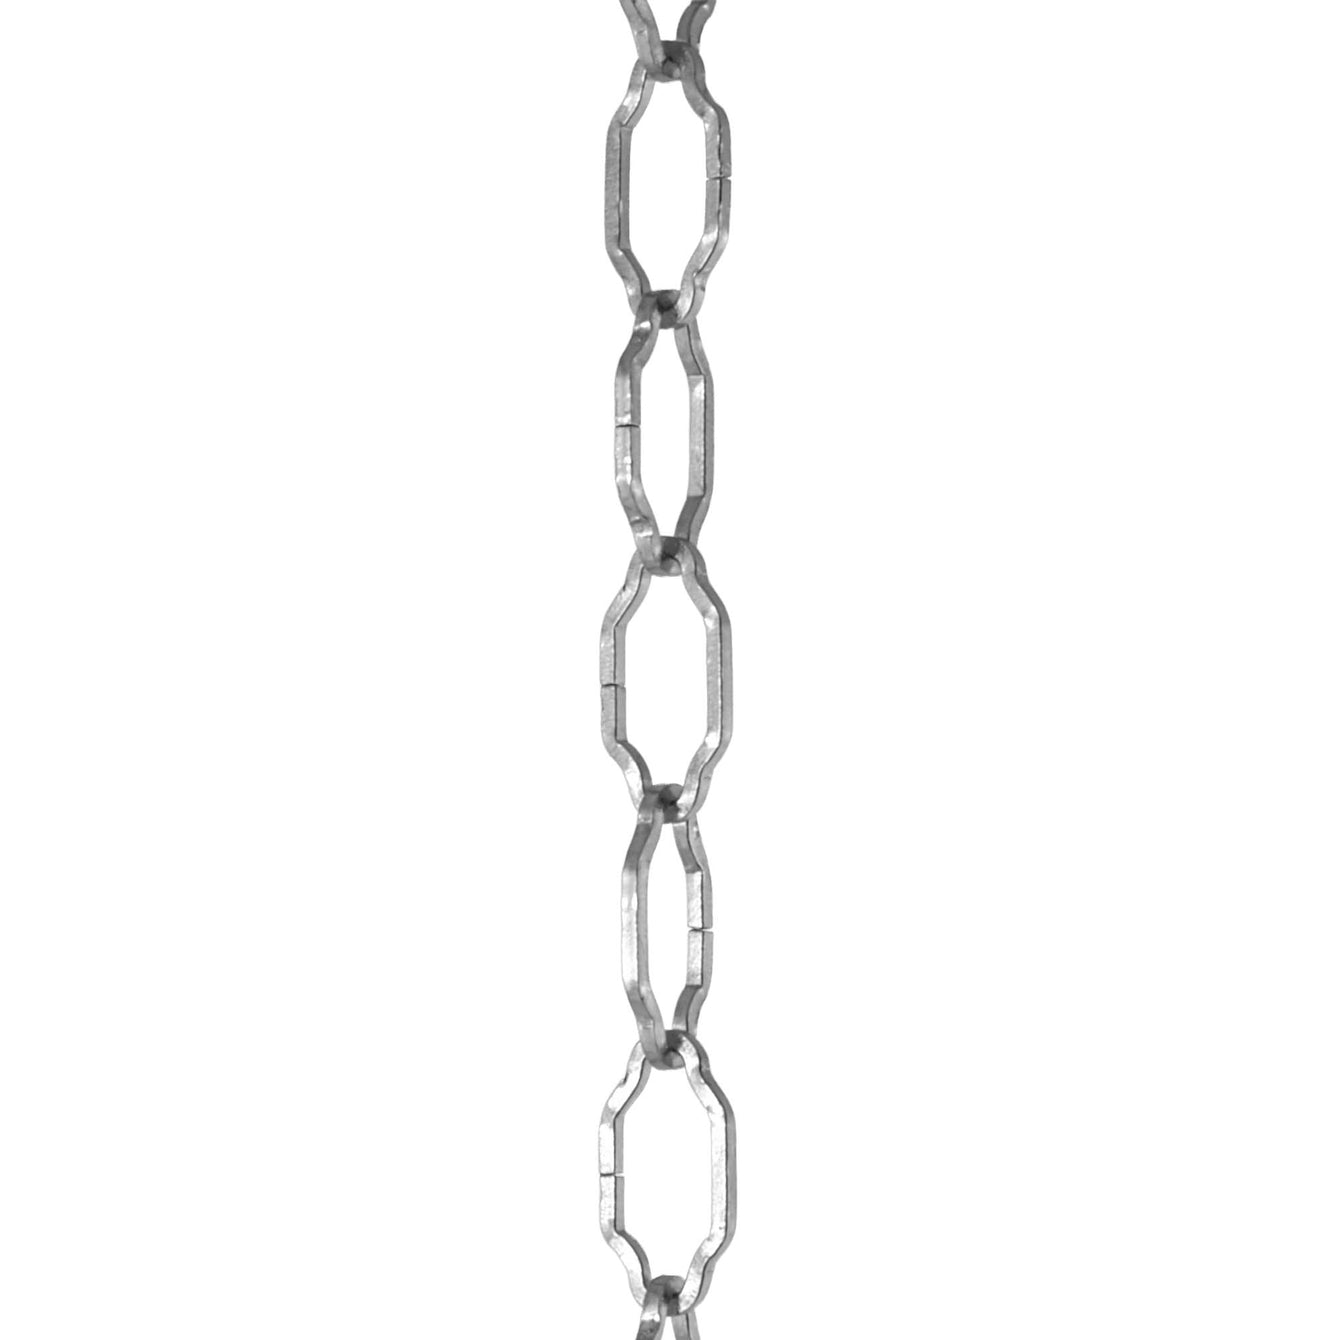 ElekTek Gothic Open Link Chain for Chandelier & Lighting 29mm x 15mm Per Linear Metre - Buy It Better